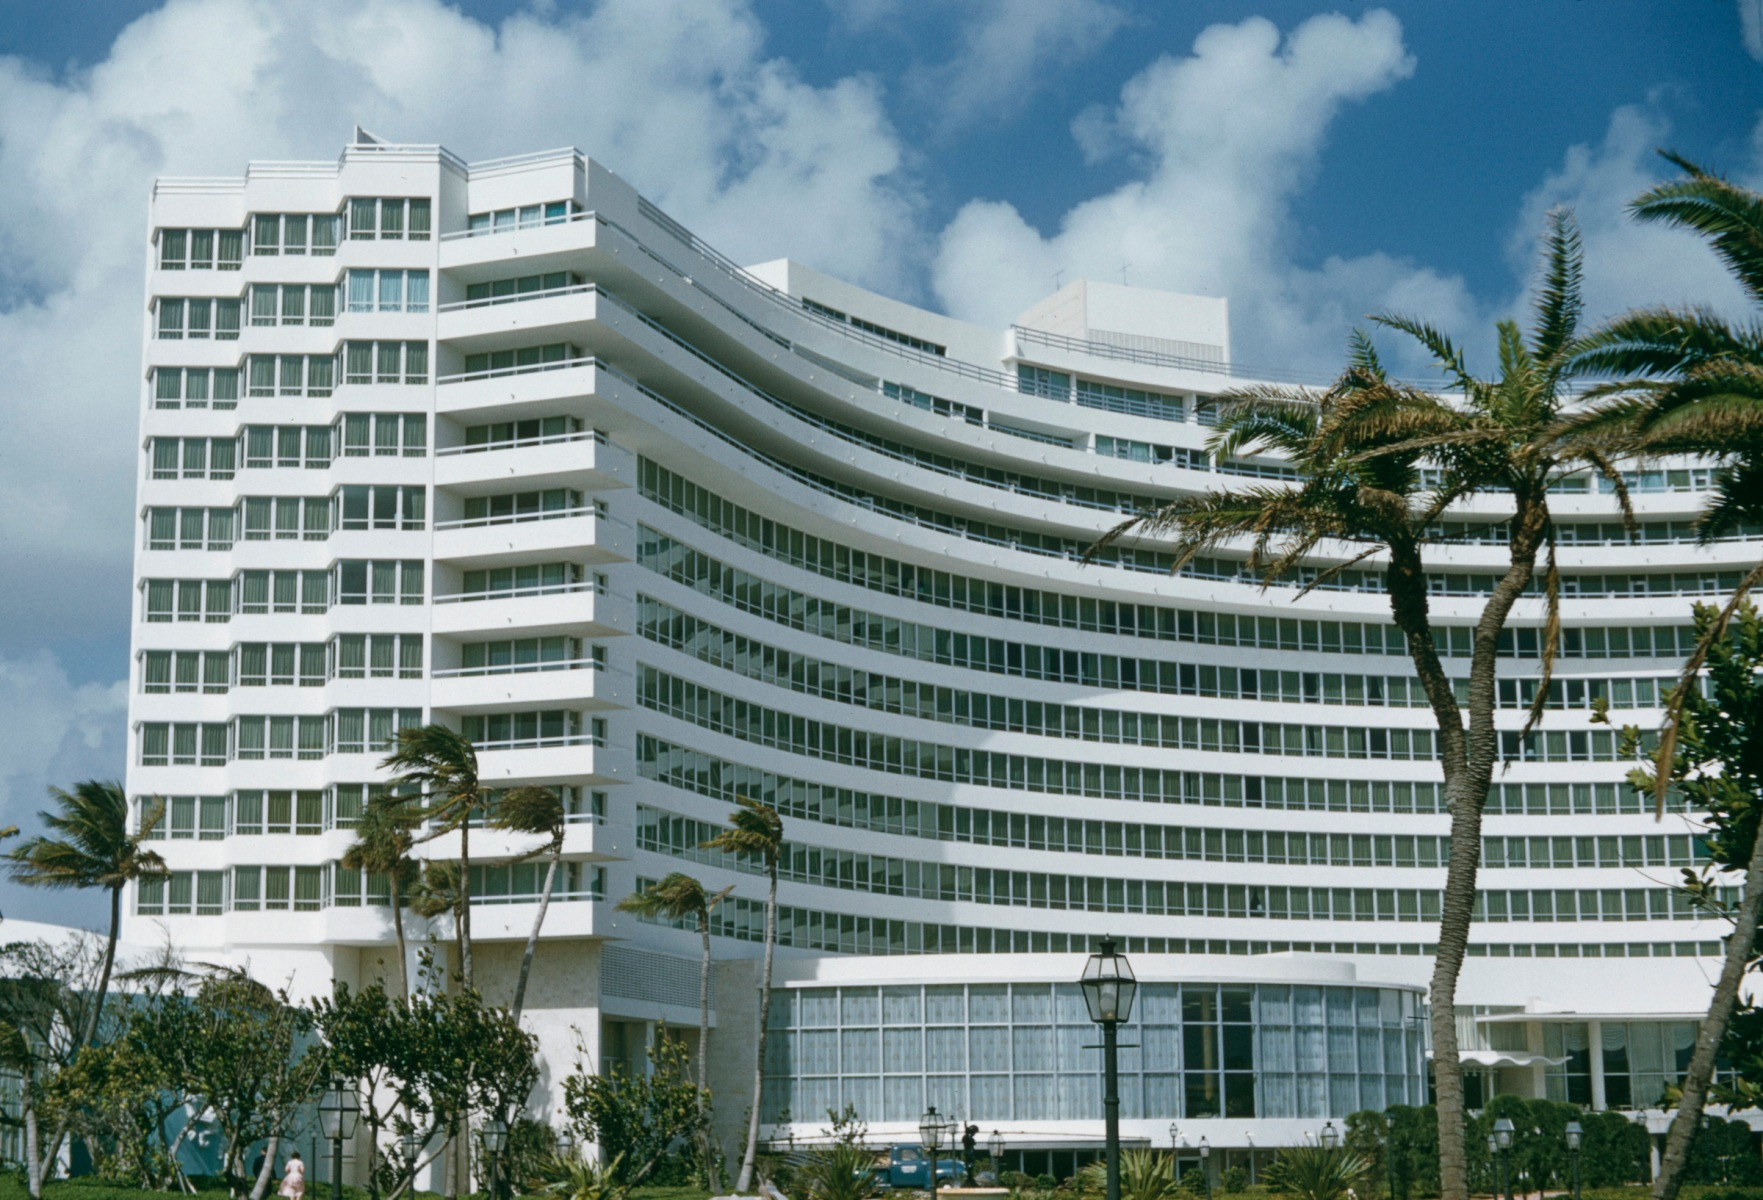 An exterior view of the Fontainebleau Miami Beach (aka Fontainebleau Hotel), Miami Beach, Florida, USA, circa 1960. The con man who impersonated Saudi Prince Khalid was working on a bid for a portion of the Fountainebleau before his arrest last year. (Photo by Archive Photos/Getty Images)